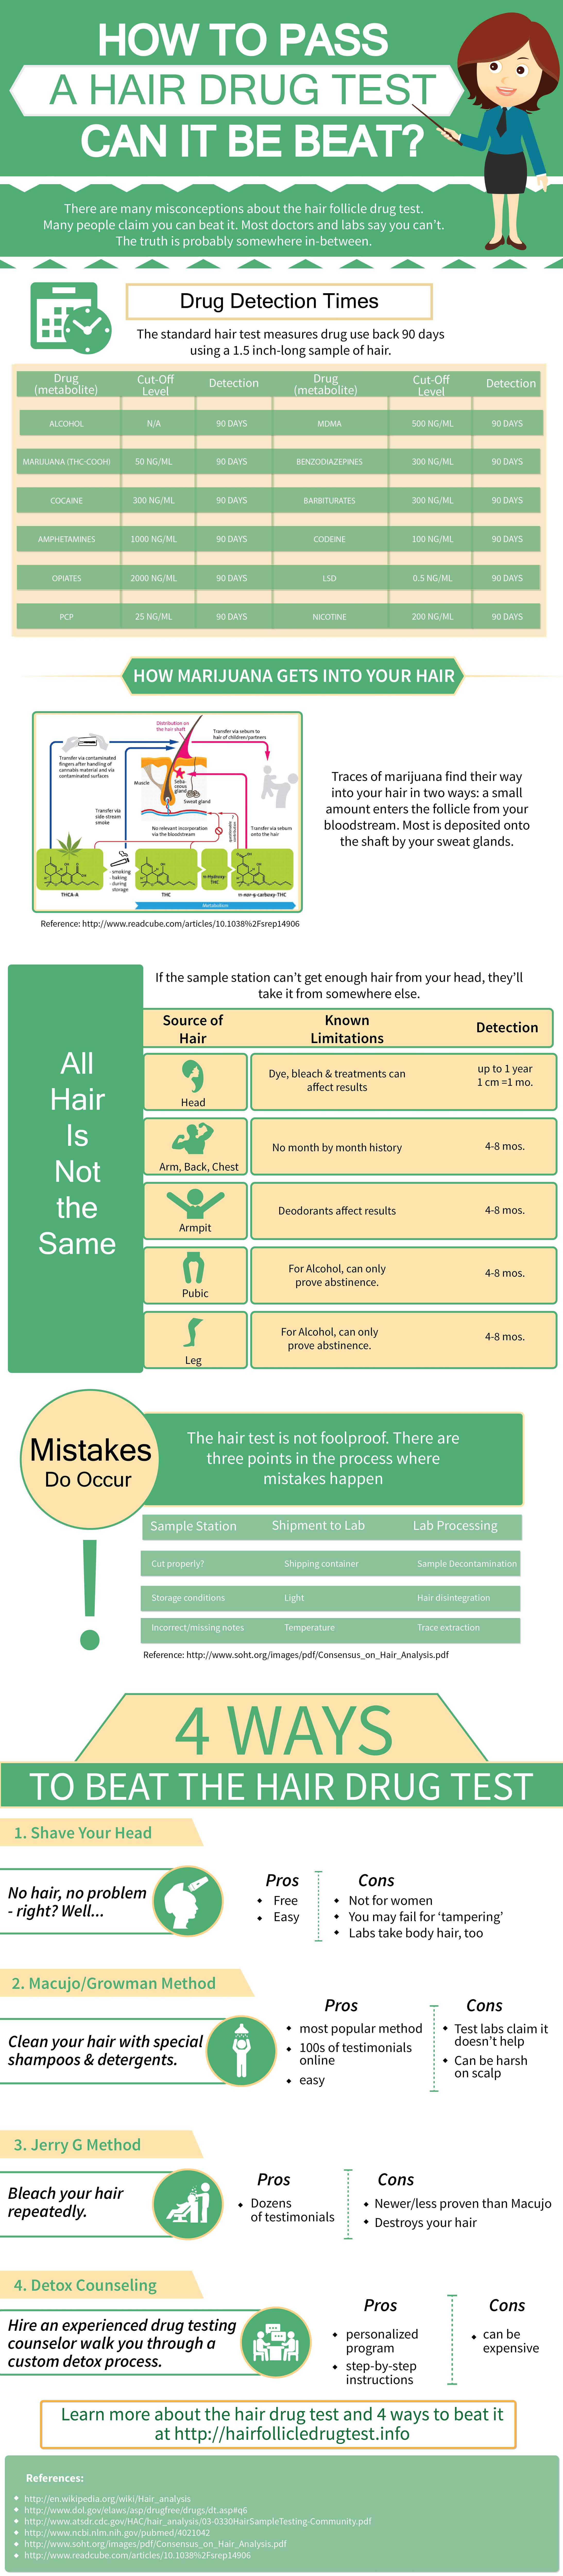 how-to-pass-a-hair-drug-test-infographic1